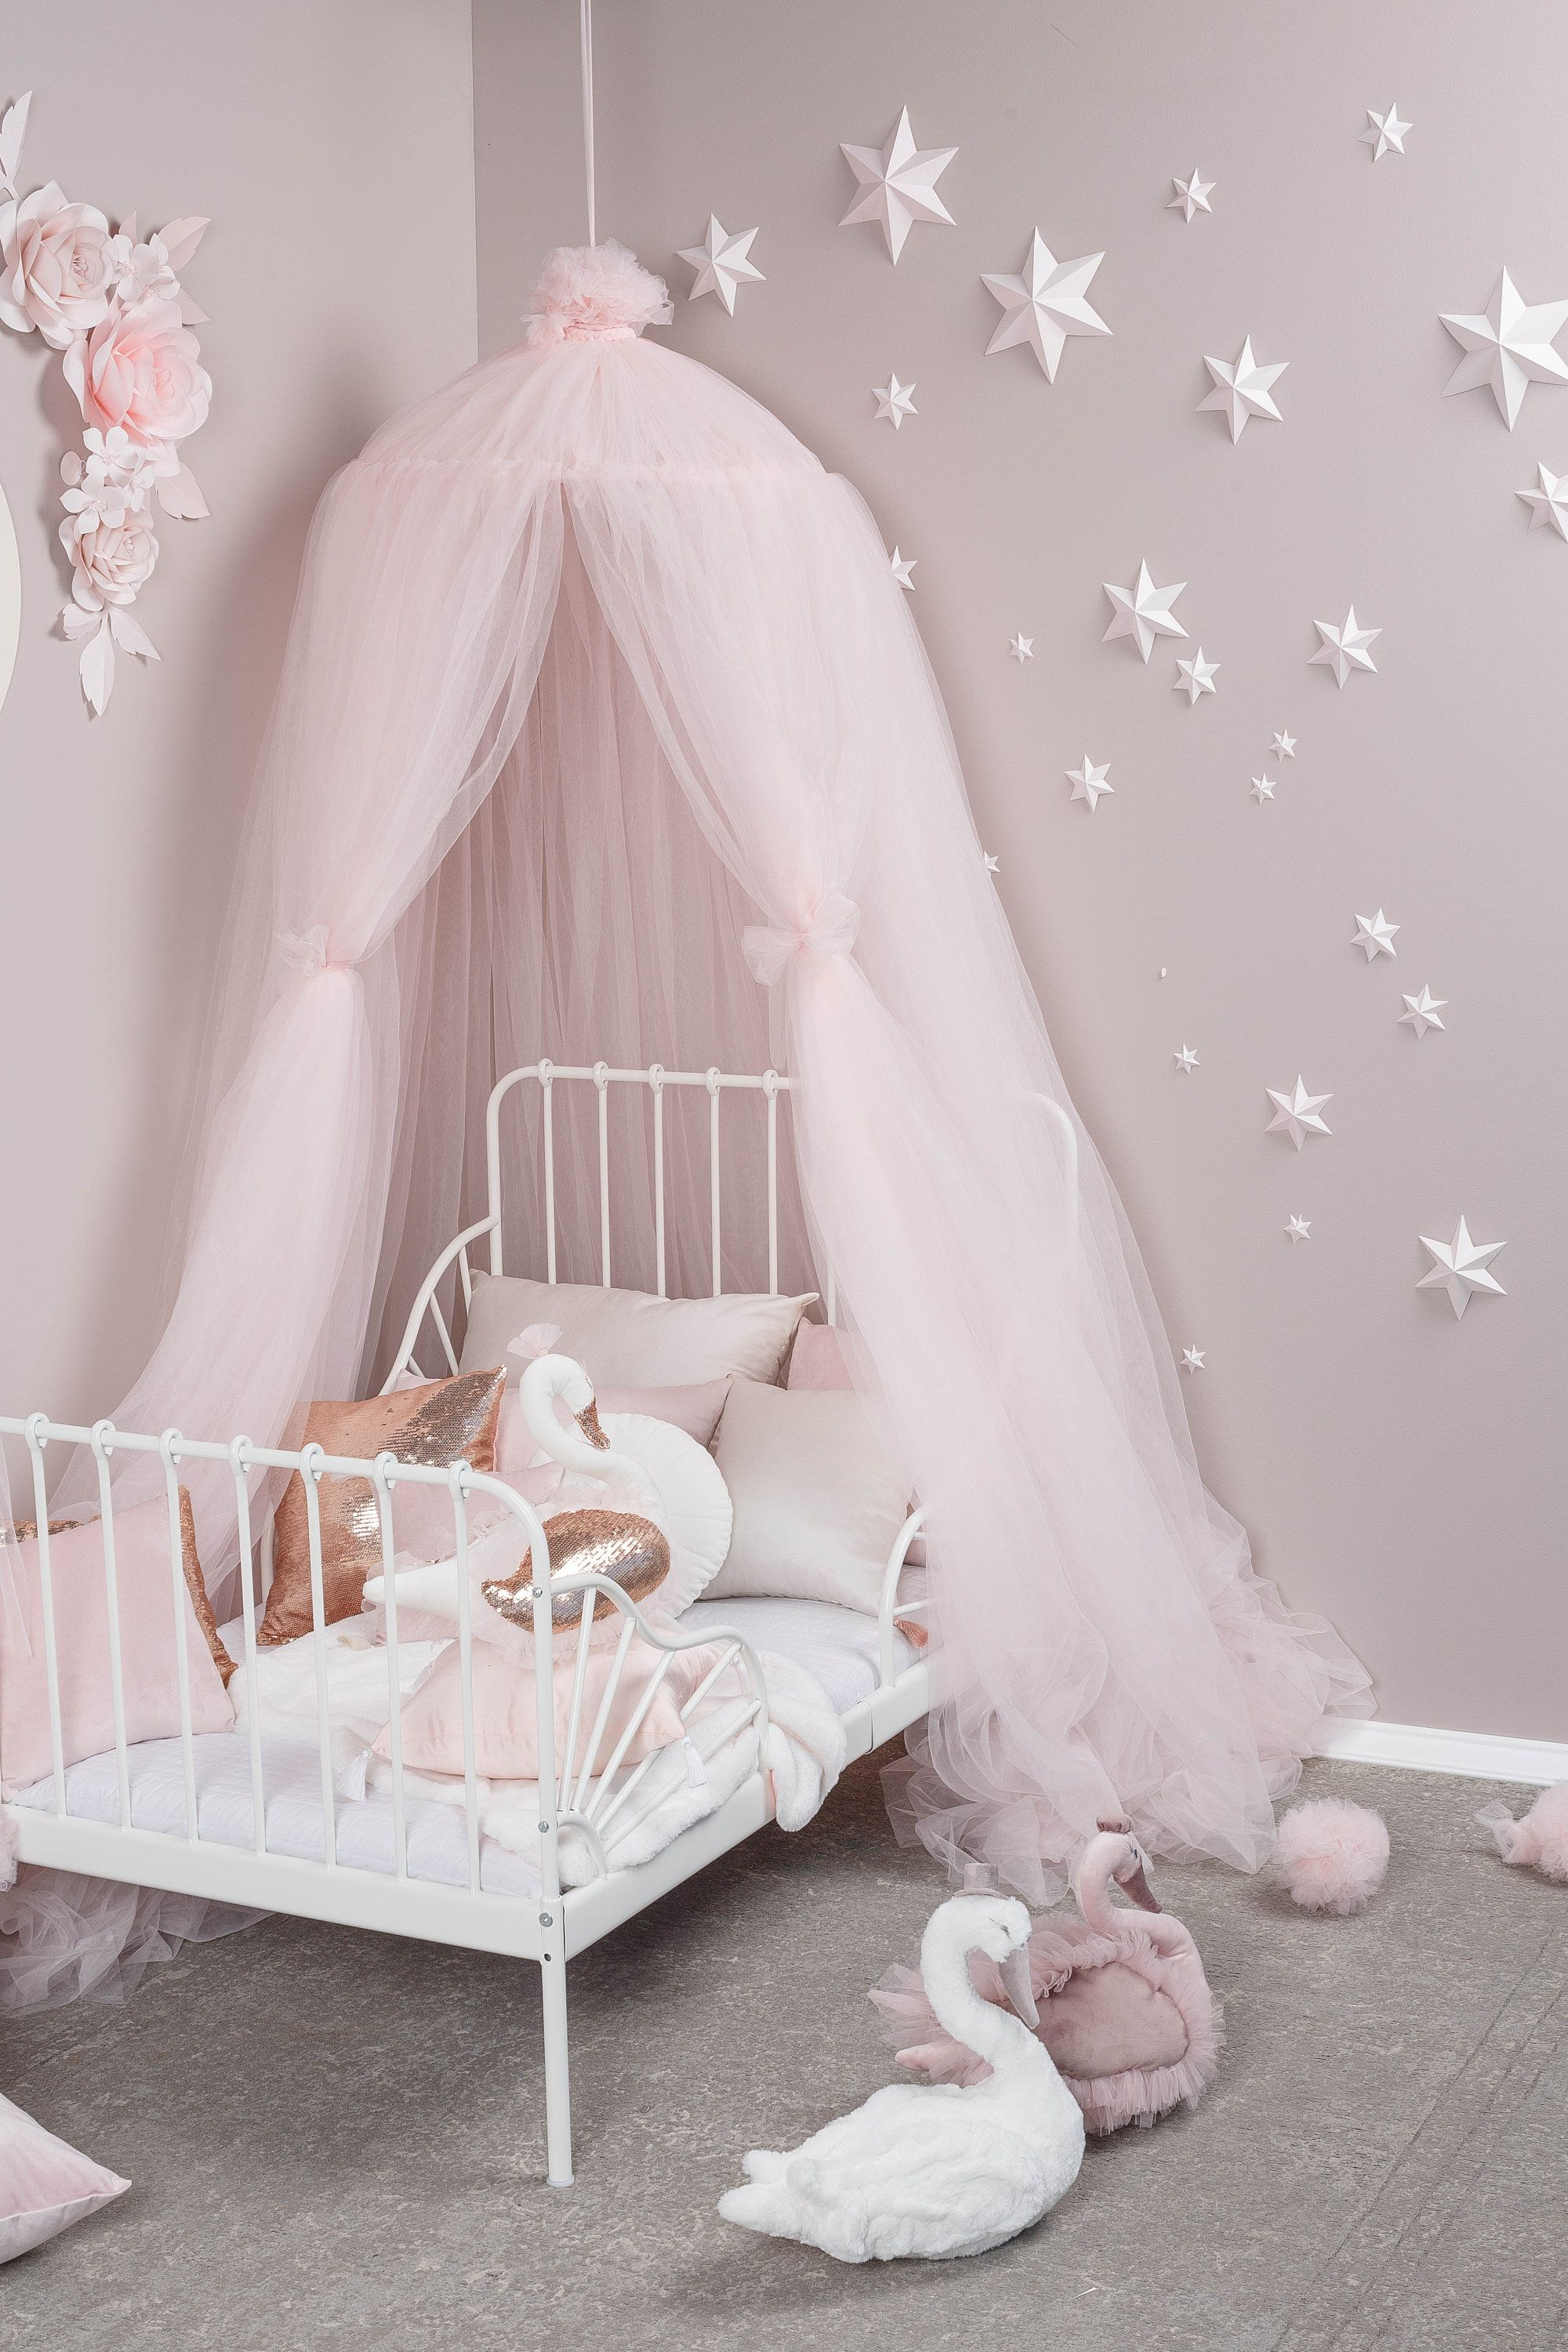 Bed Canopy Baldachin Tulle Canopy Pink Canopy Play Room Canopy Canopy For Nursery Kids Canopy Tent Ca Pink Kids Bedrooms Toddler Girl Room Pink Playroom